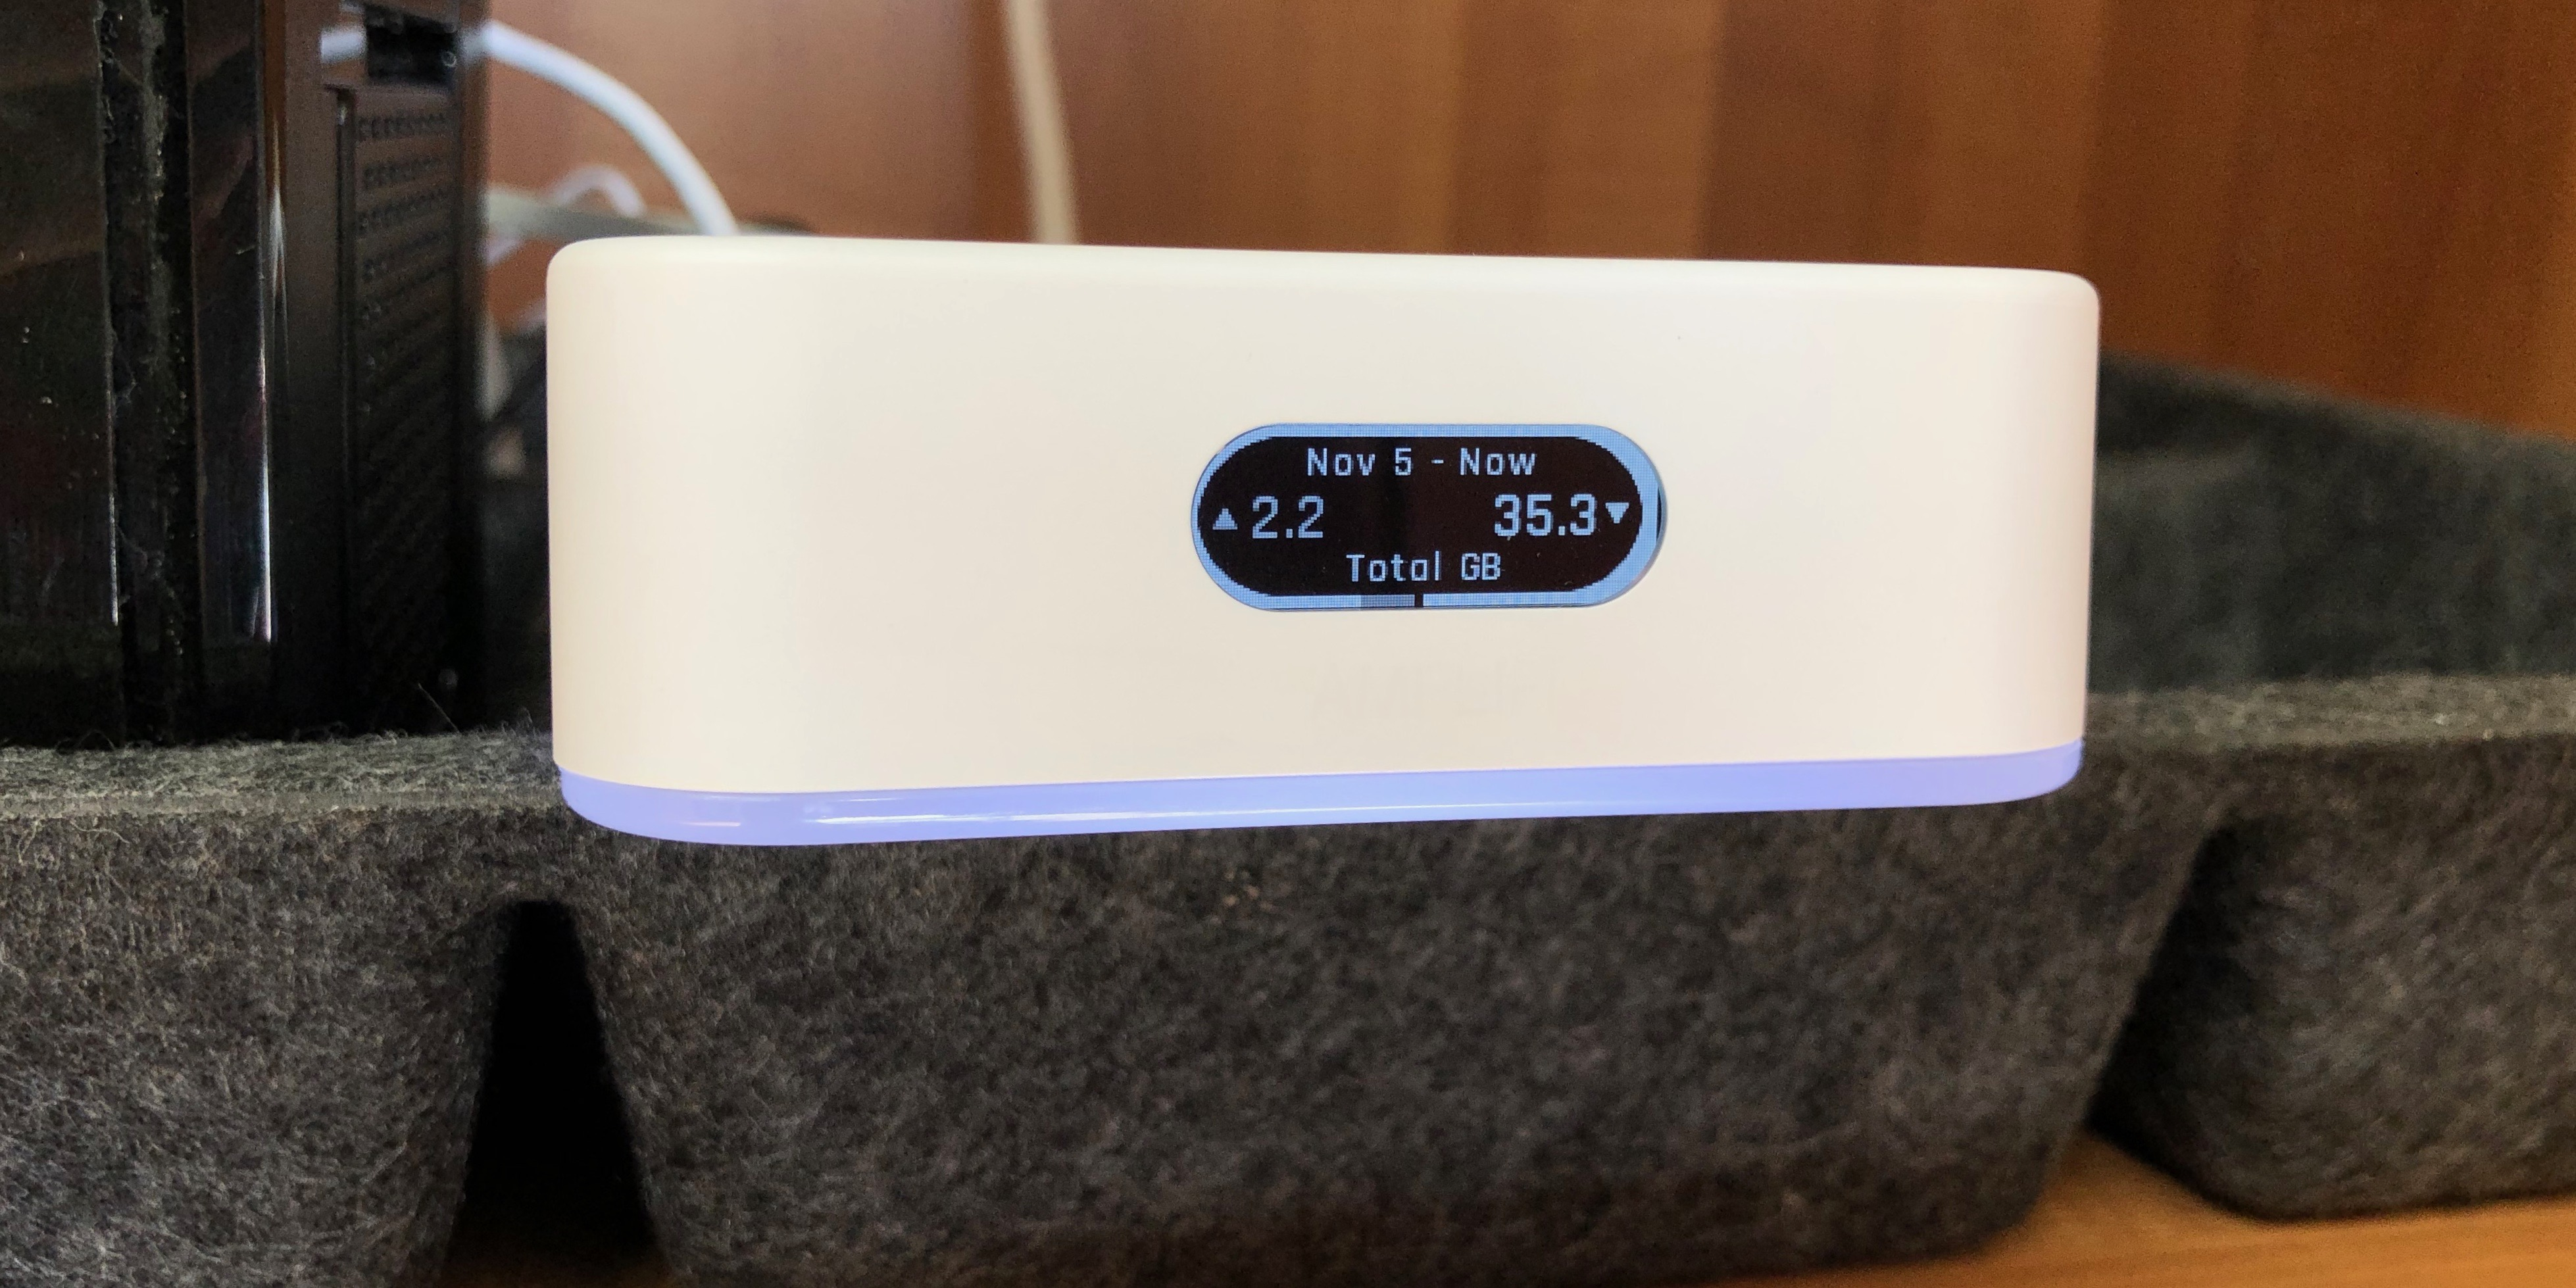 Review: AmpliFi Instant mesh WiFi system is a quality product with 2